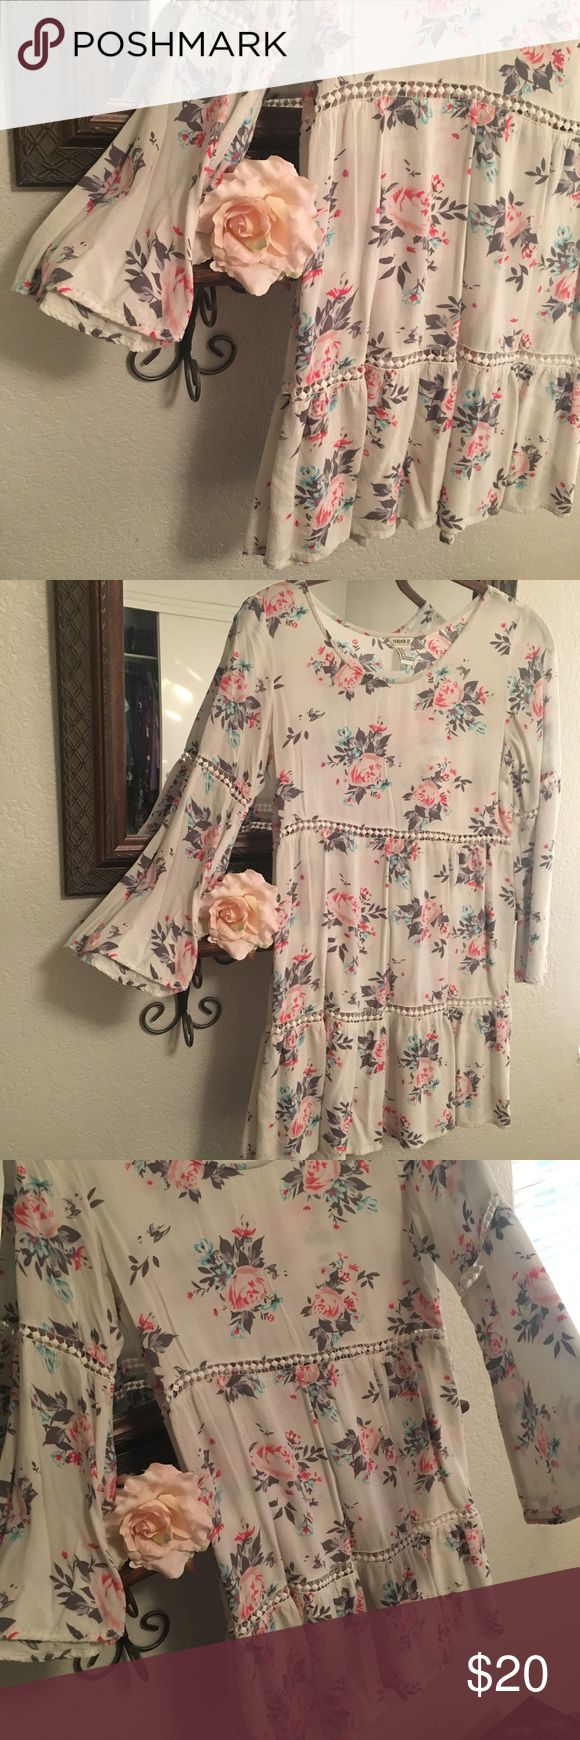 🍂🌸Forever 21 Floral Dress🌸🍂 🍂🌸Forever 21 Floral Dress🌸🍂 Pretty, light and so comfortable! Has bell-sleeves and lovely detailing. Pair with sandals or boots for the perfect weekend look! May need a slip/camisole underneath. Perfect condition. Comes from a smoke-free home:)💕 Forever 21 Dresses Midi